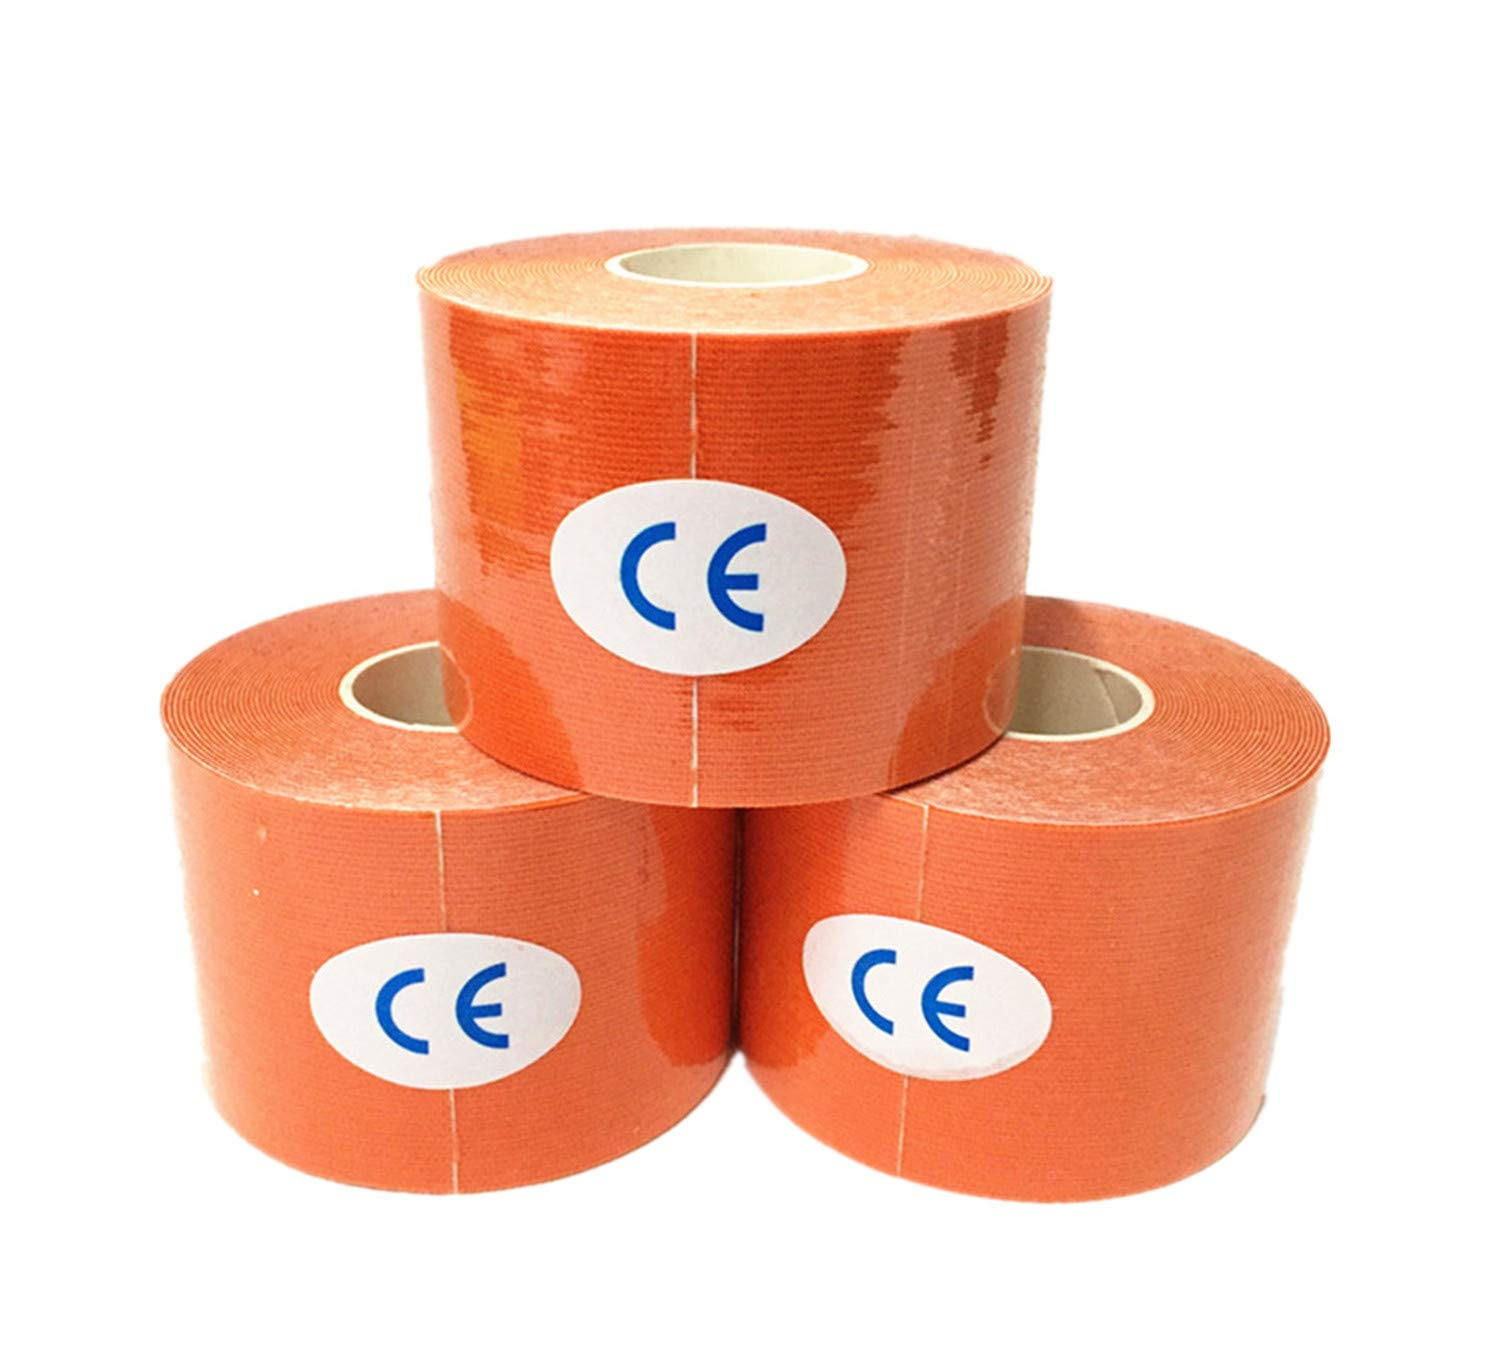 Kinesiology Tape Precut 3pcs Set Elastic Therapeutic Sports Tape for Knee Shoulder and Elbow, Breathable, Waterproof, Latex Free, 2'' x 16.5 Feet per Roll, Orange by ReachTop